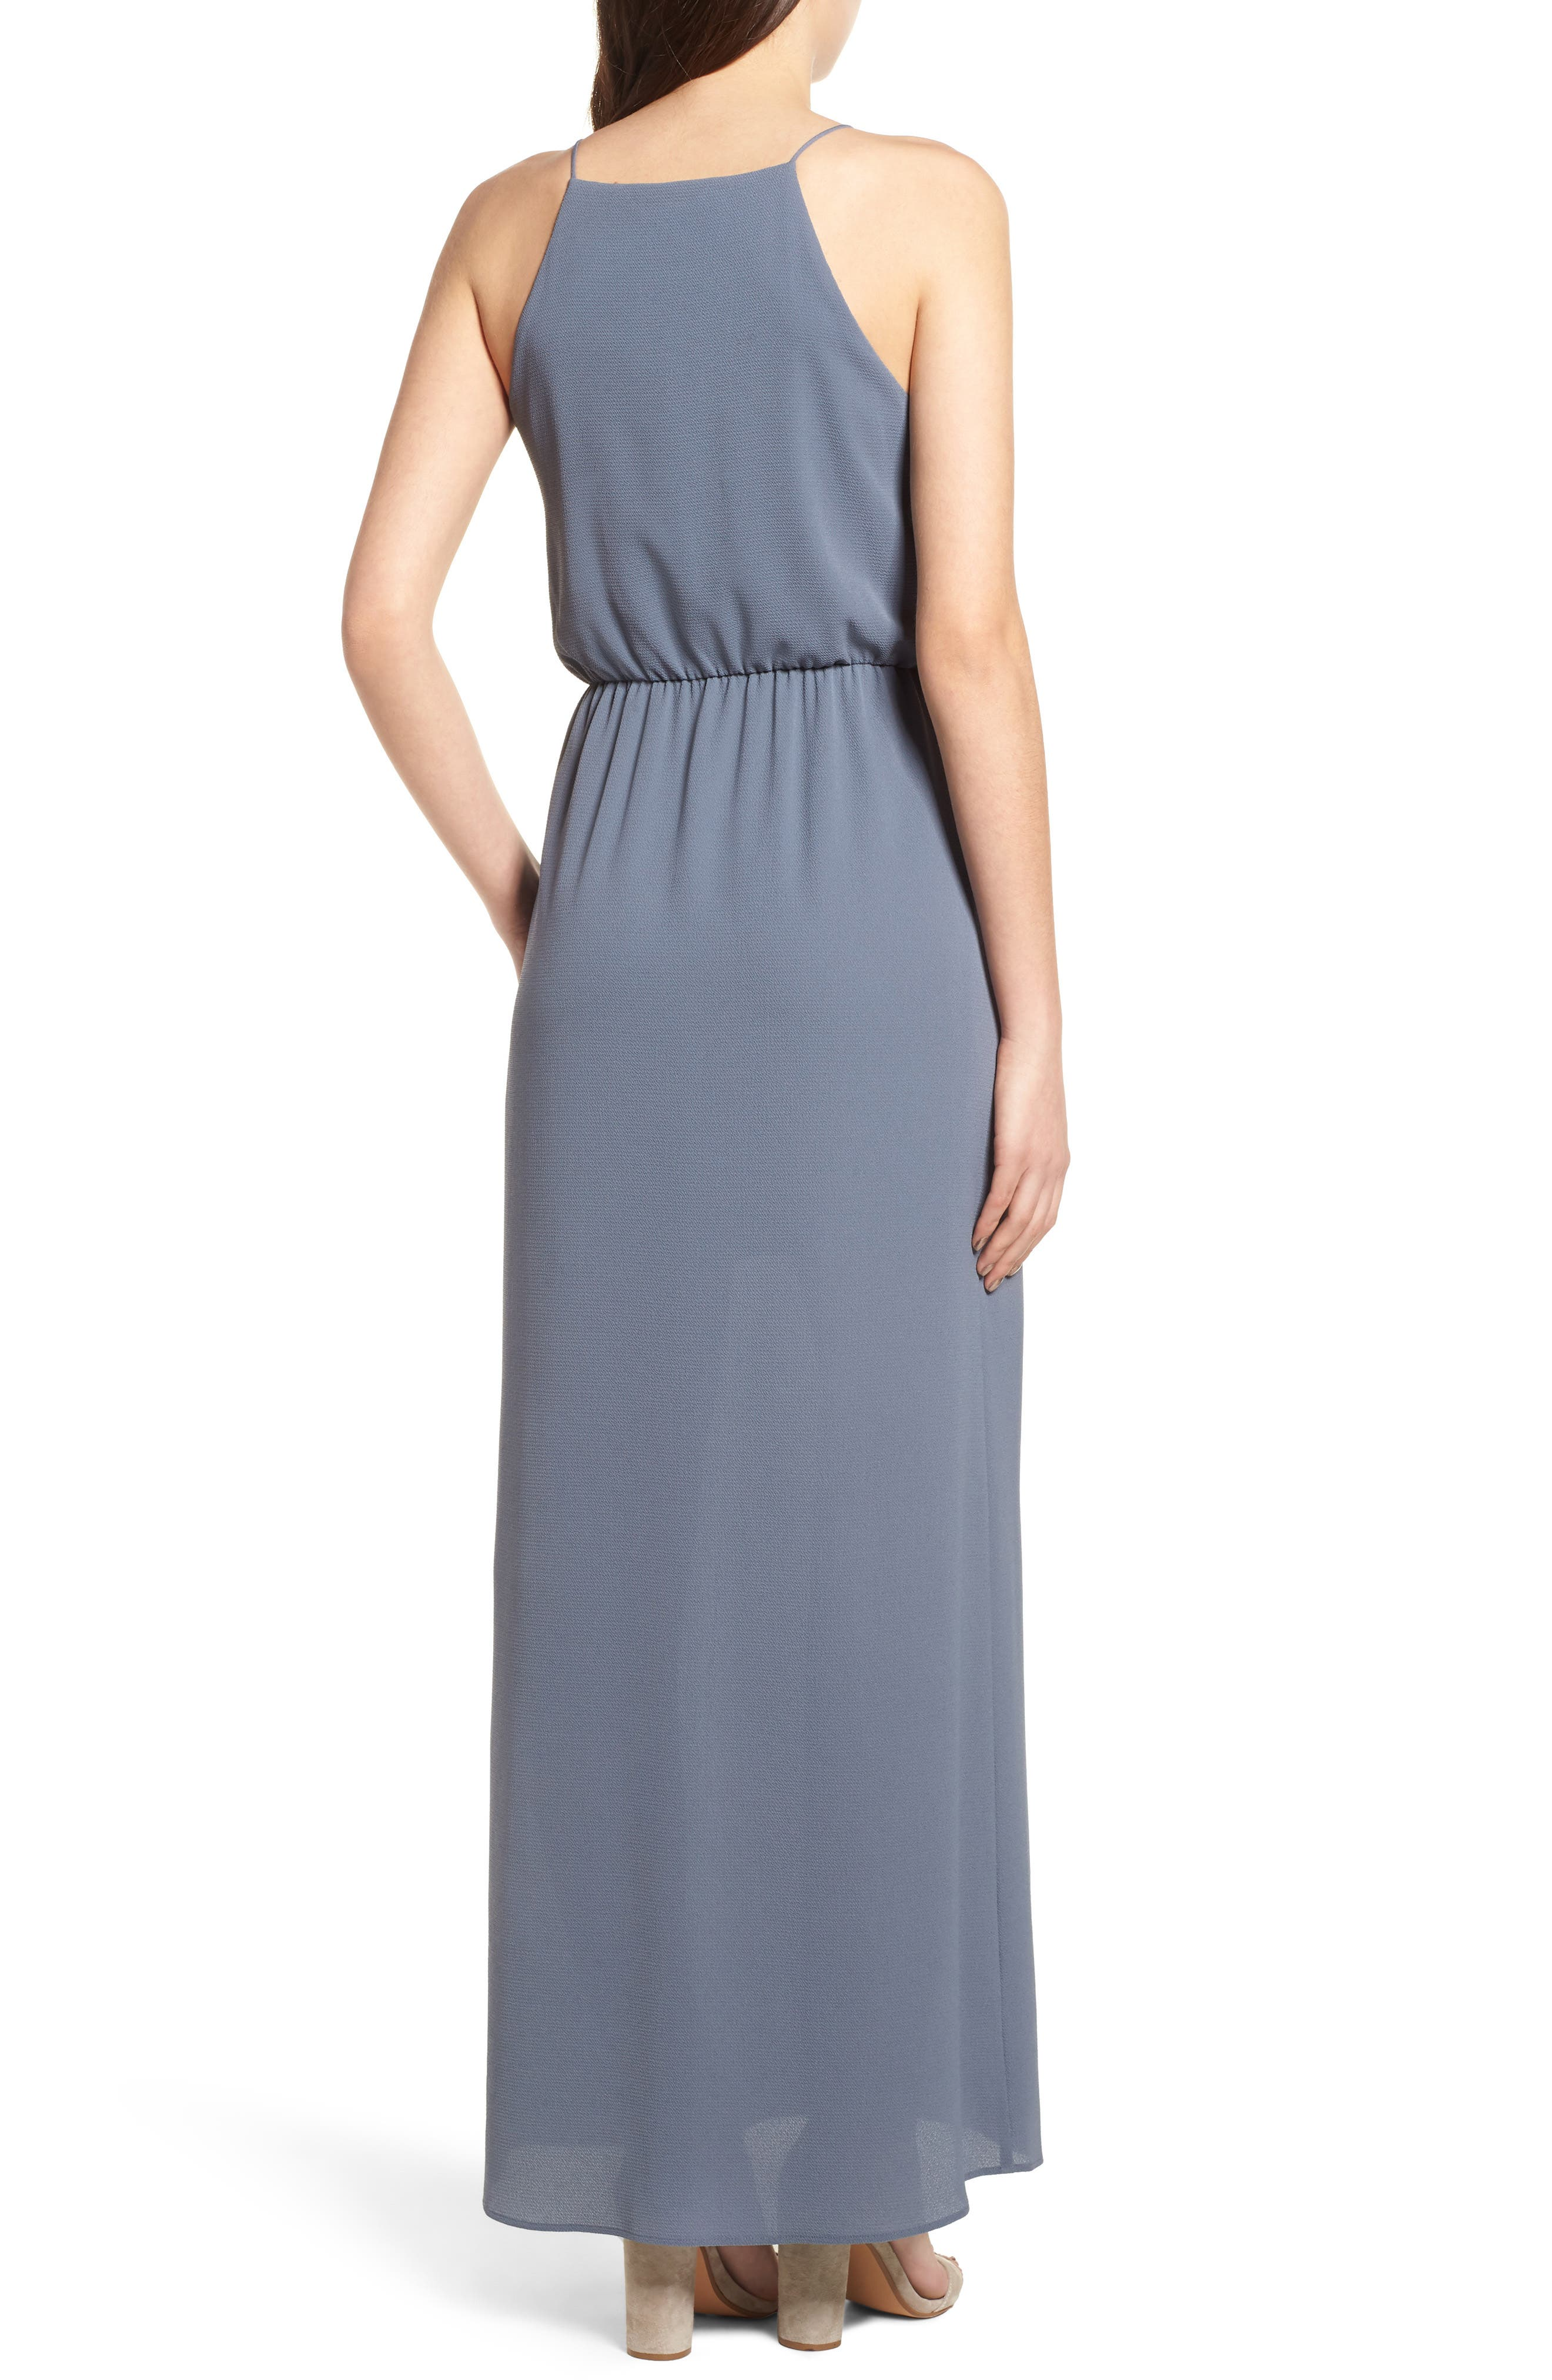 Posie Maxi Dress,                             Alternate thumbnail 2, color,                             027